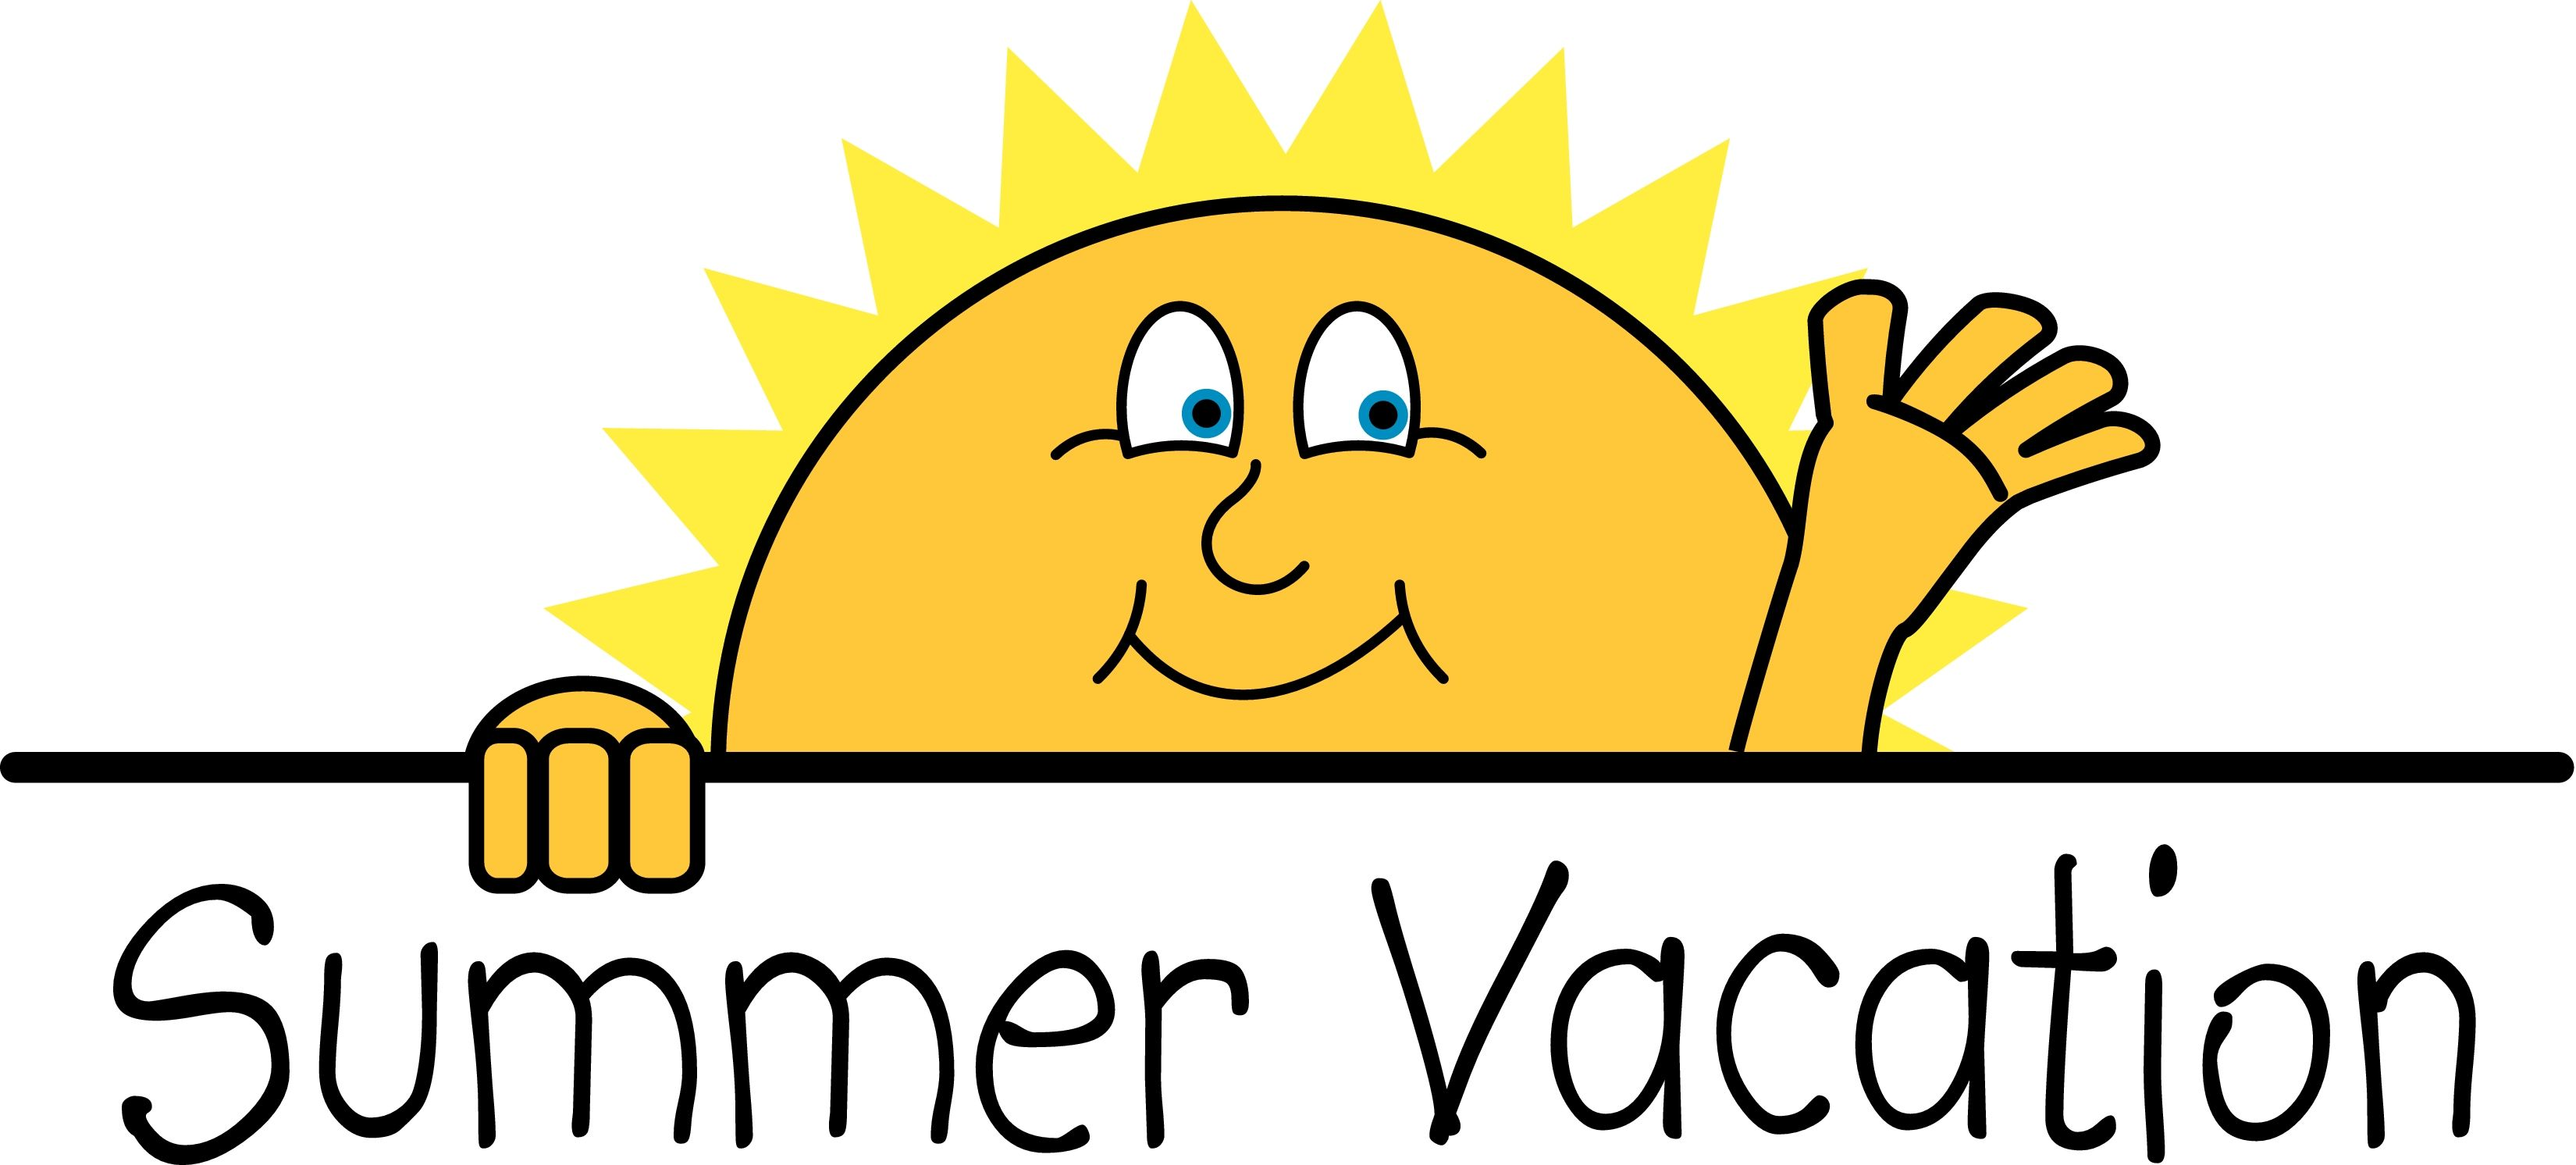 happy summer vacation clipart clipartfest jpeg 3300 1492 posts rh pinterest com school summer vacation clipart happy summer vacation clipart